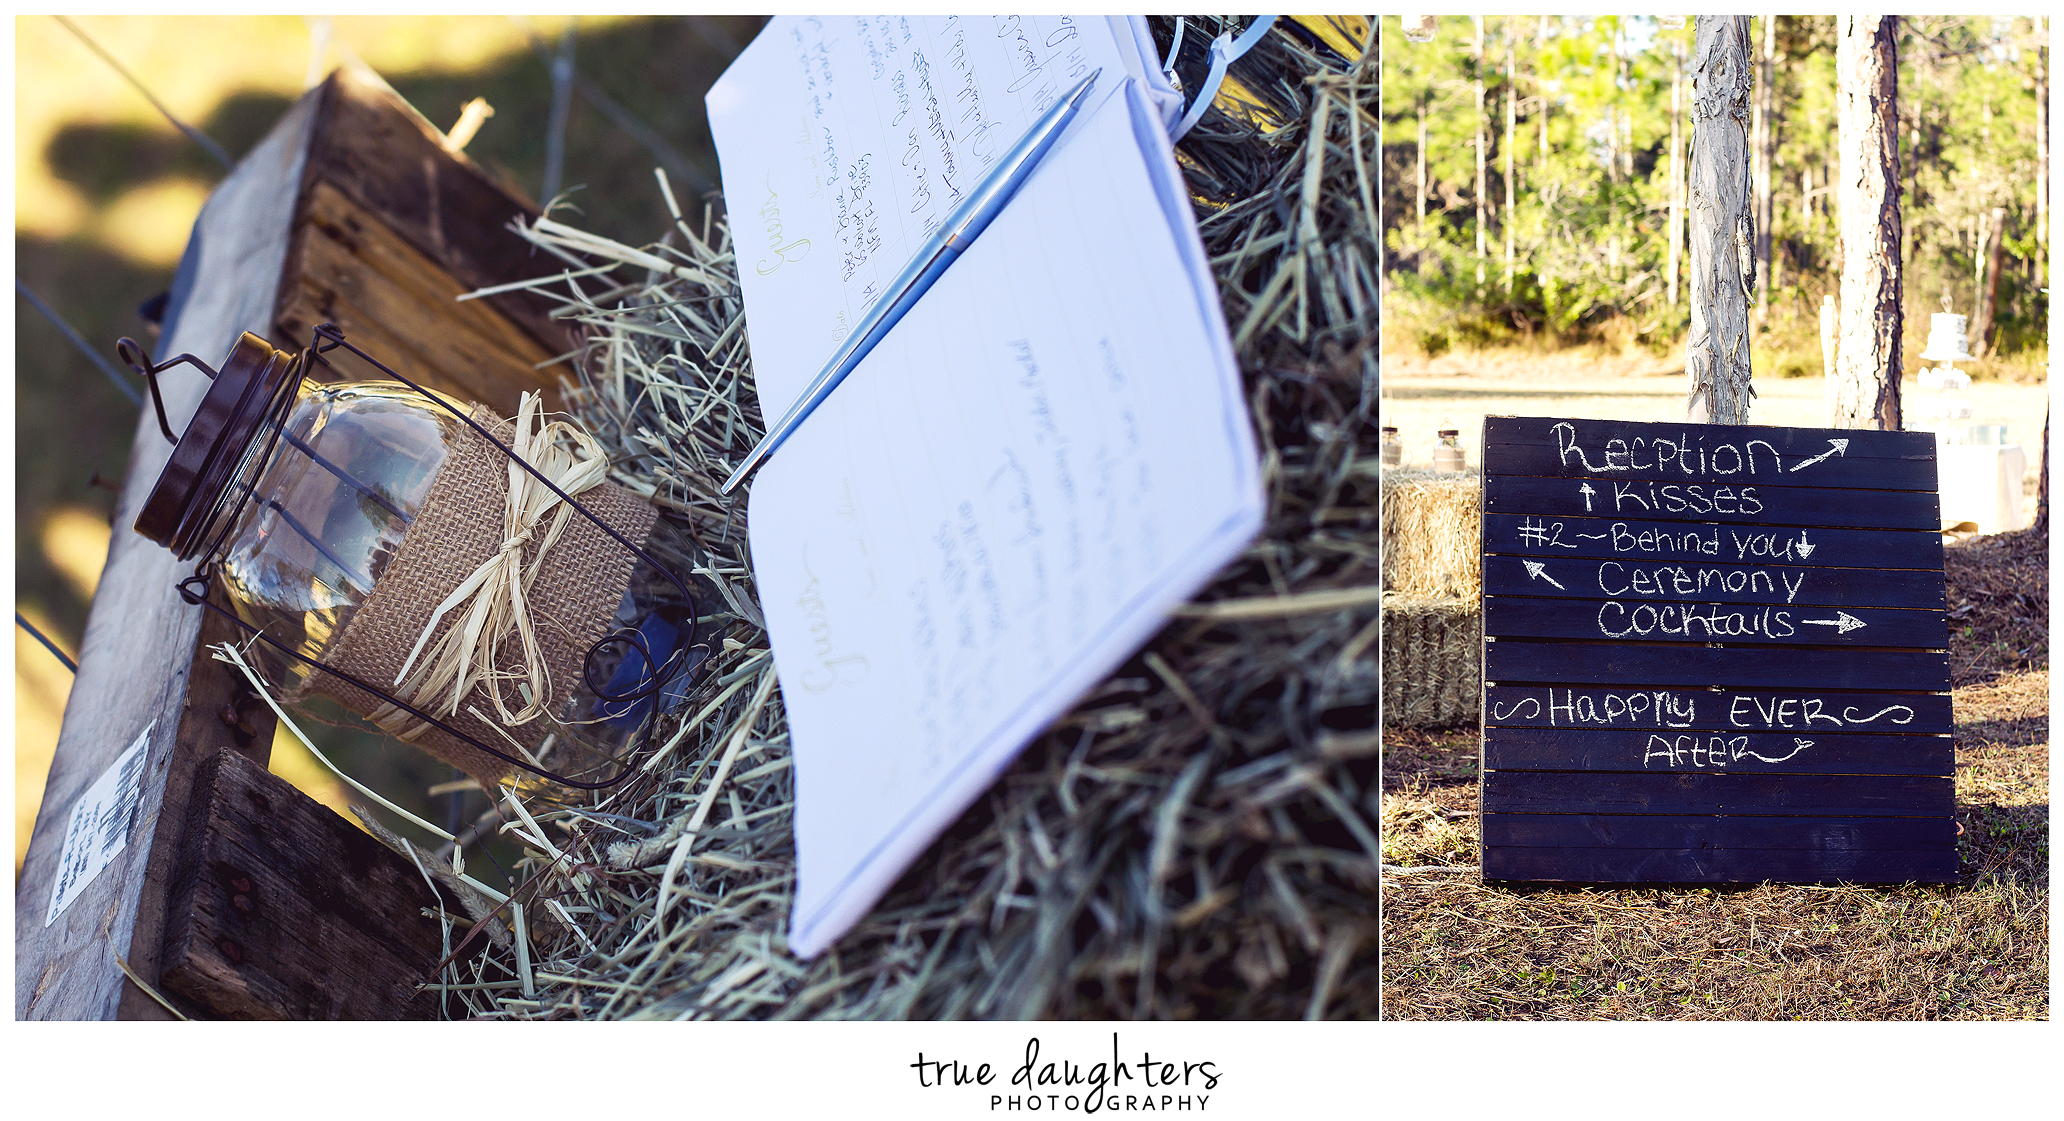 True_Daughters_Photography_Campitelli_Wedding-9.png